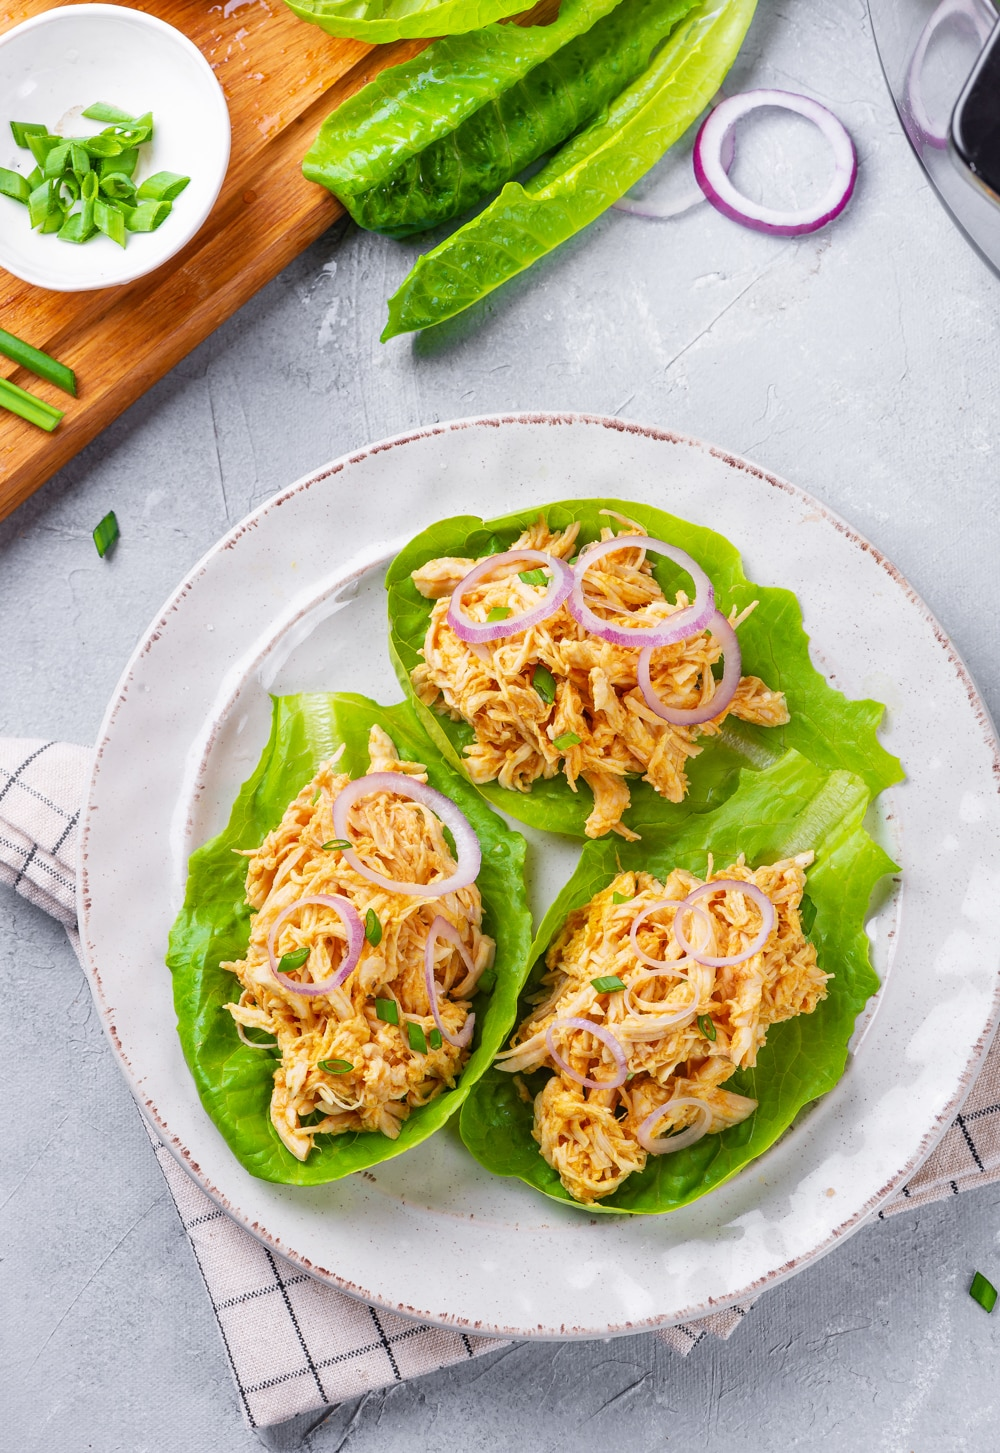 3 Buffalo chicken lettuce wraps topped with green and red onions on a white plate.